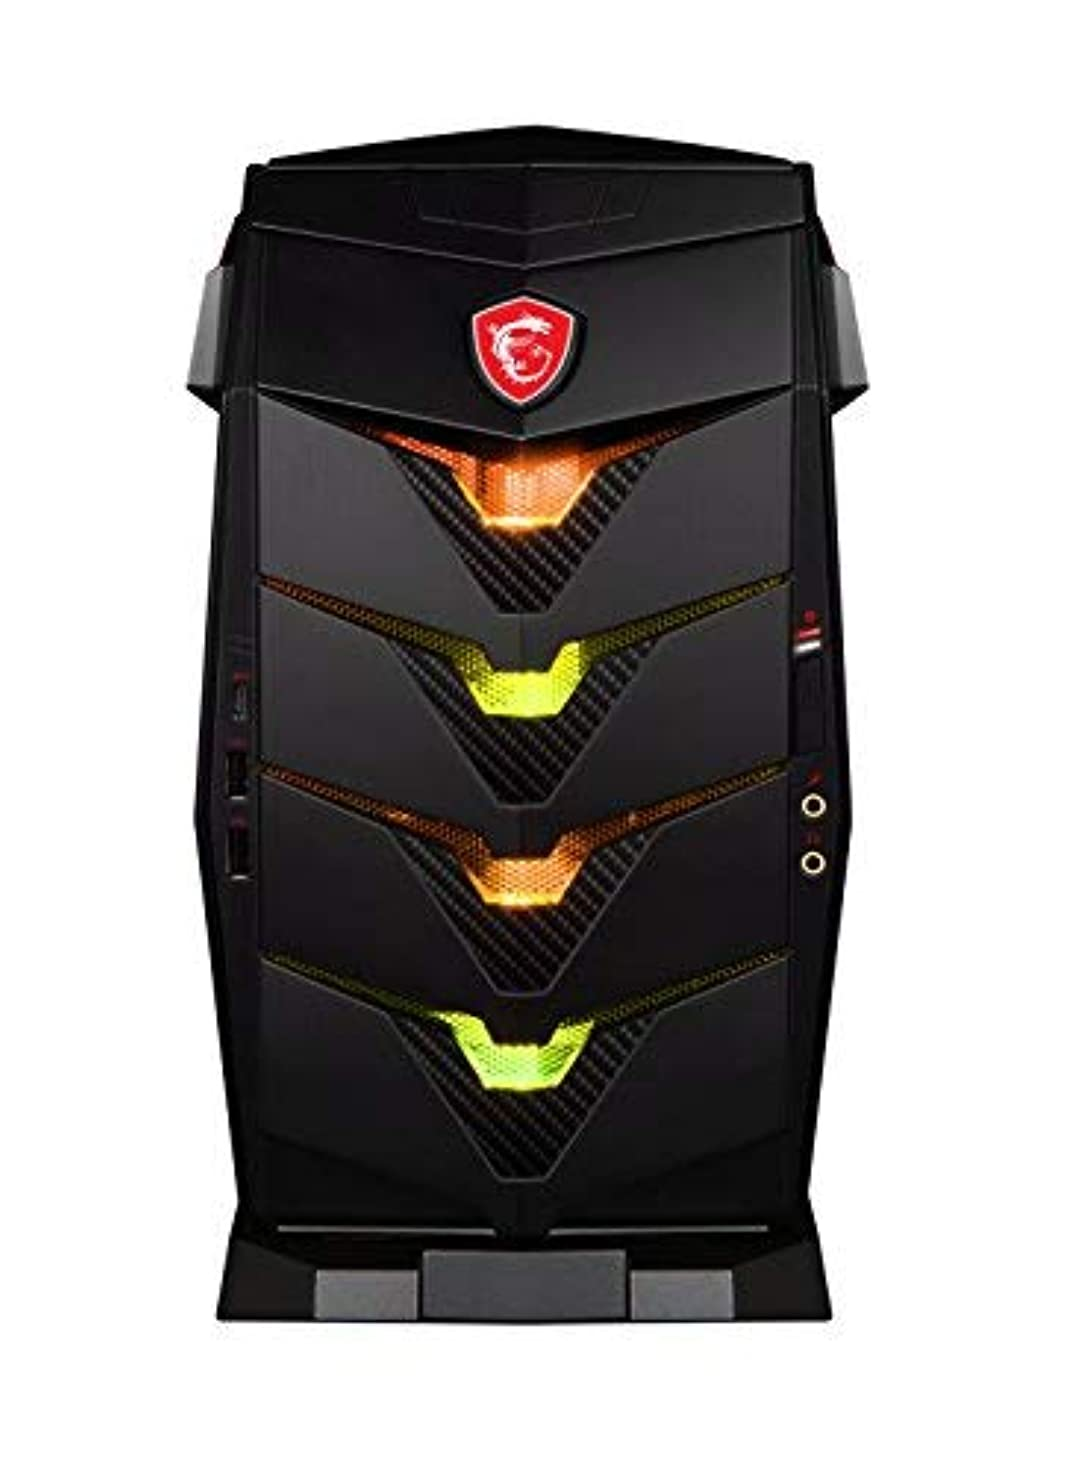 肉腫全部好奇心盛MSI Aegis 3 Plus 8th Aegis 3 Plus 8RD-224US Intel Core i7 (8th Gen) i7-8700 16GB DDR4 SDRAM 2TB HDD 256GB SSD VR Ready Gaming Desktop Computer [並行輸入品]